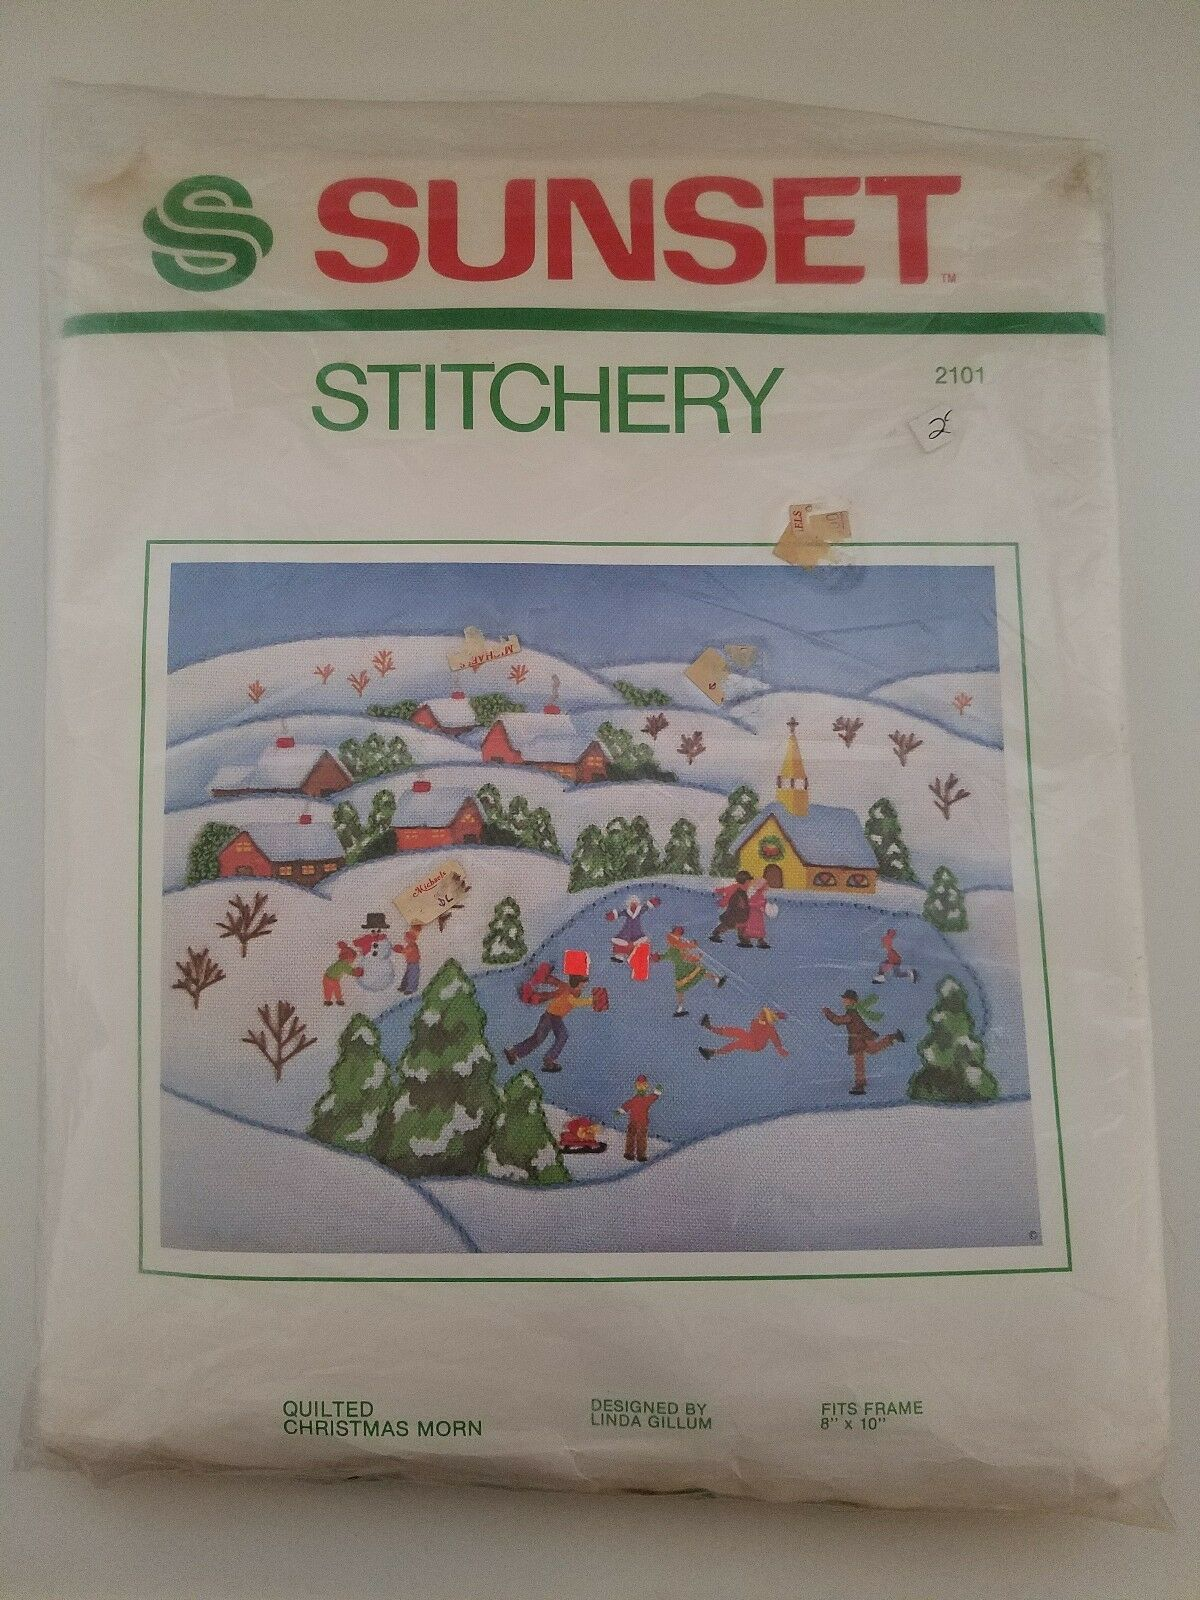 Primary image for Sunset Stitchery Quilted 1971 Christmas Morn Linda Gillum Kit No 2101